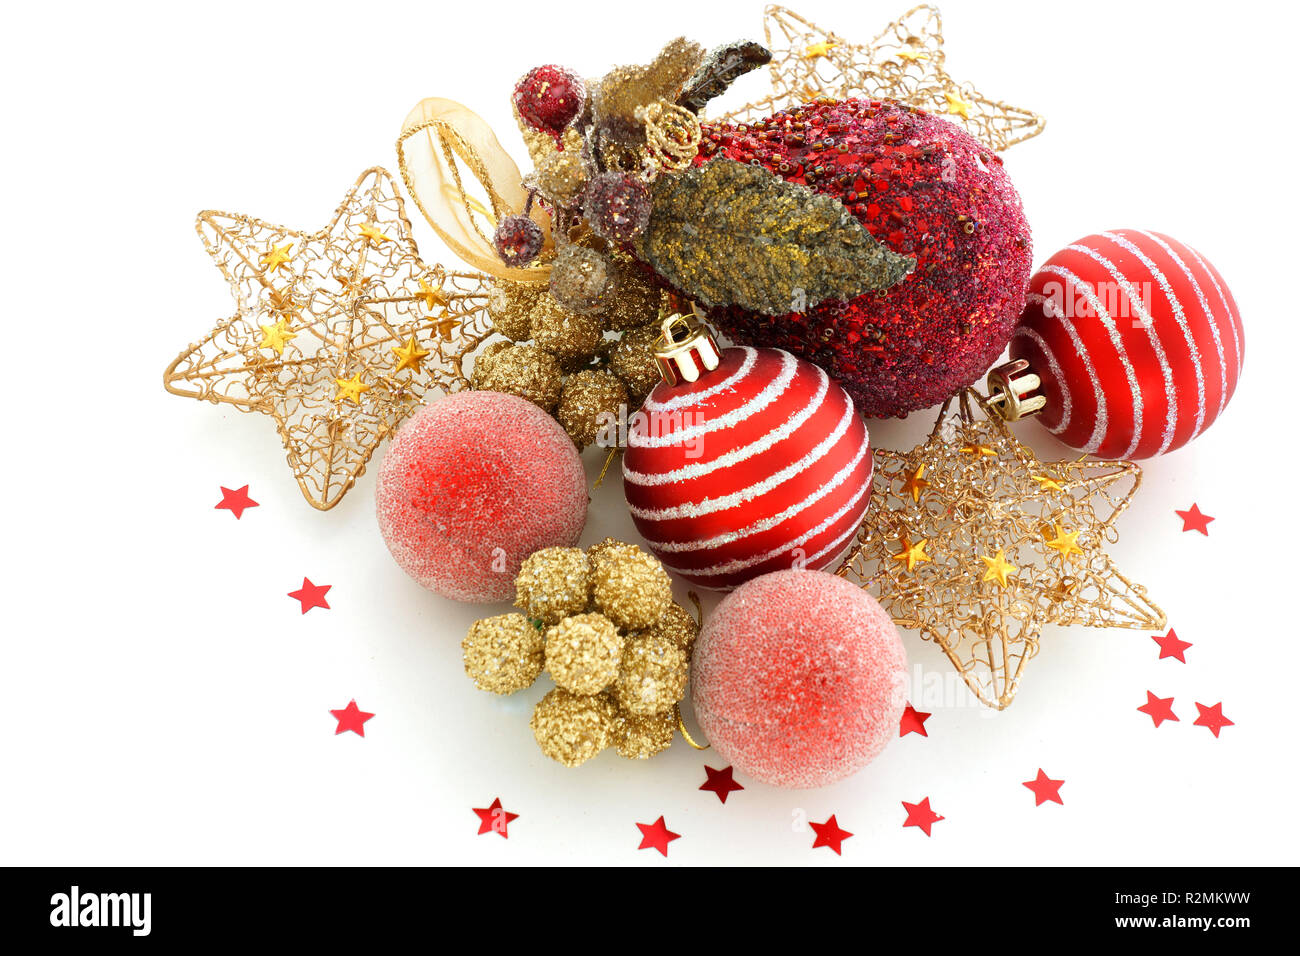 Red And Gold Christmas Decorations On White Background Very Beautiful Variety Of Holiday Decorations Are On The White Table Stock Photo Alamy